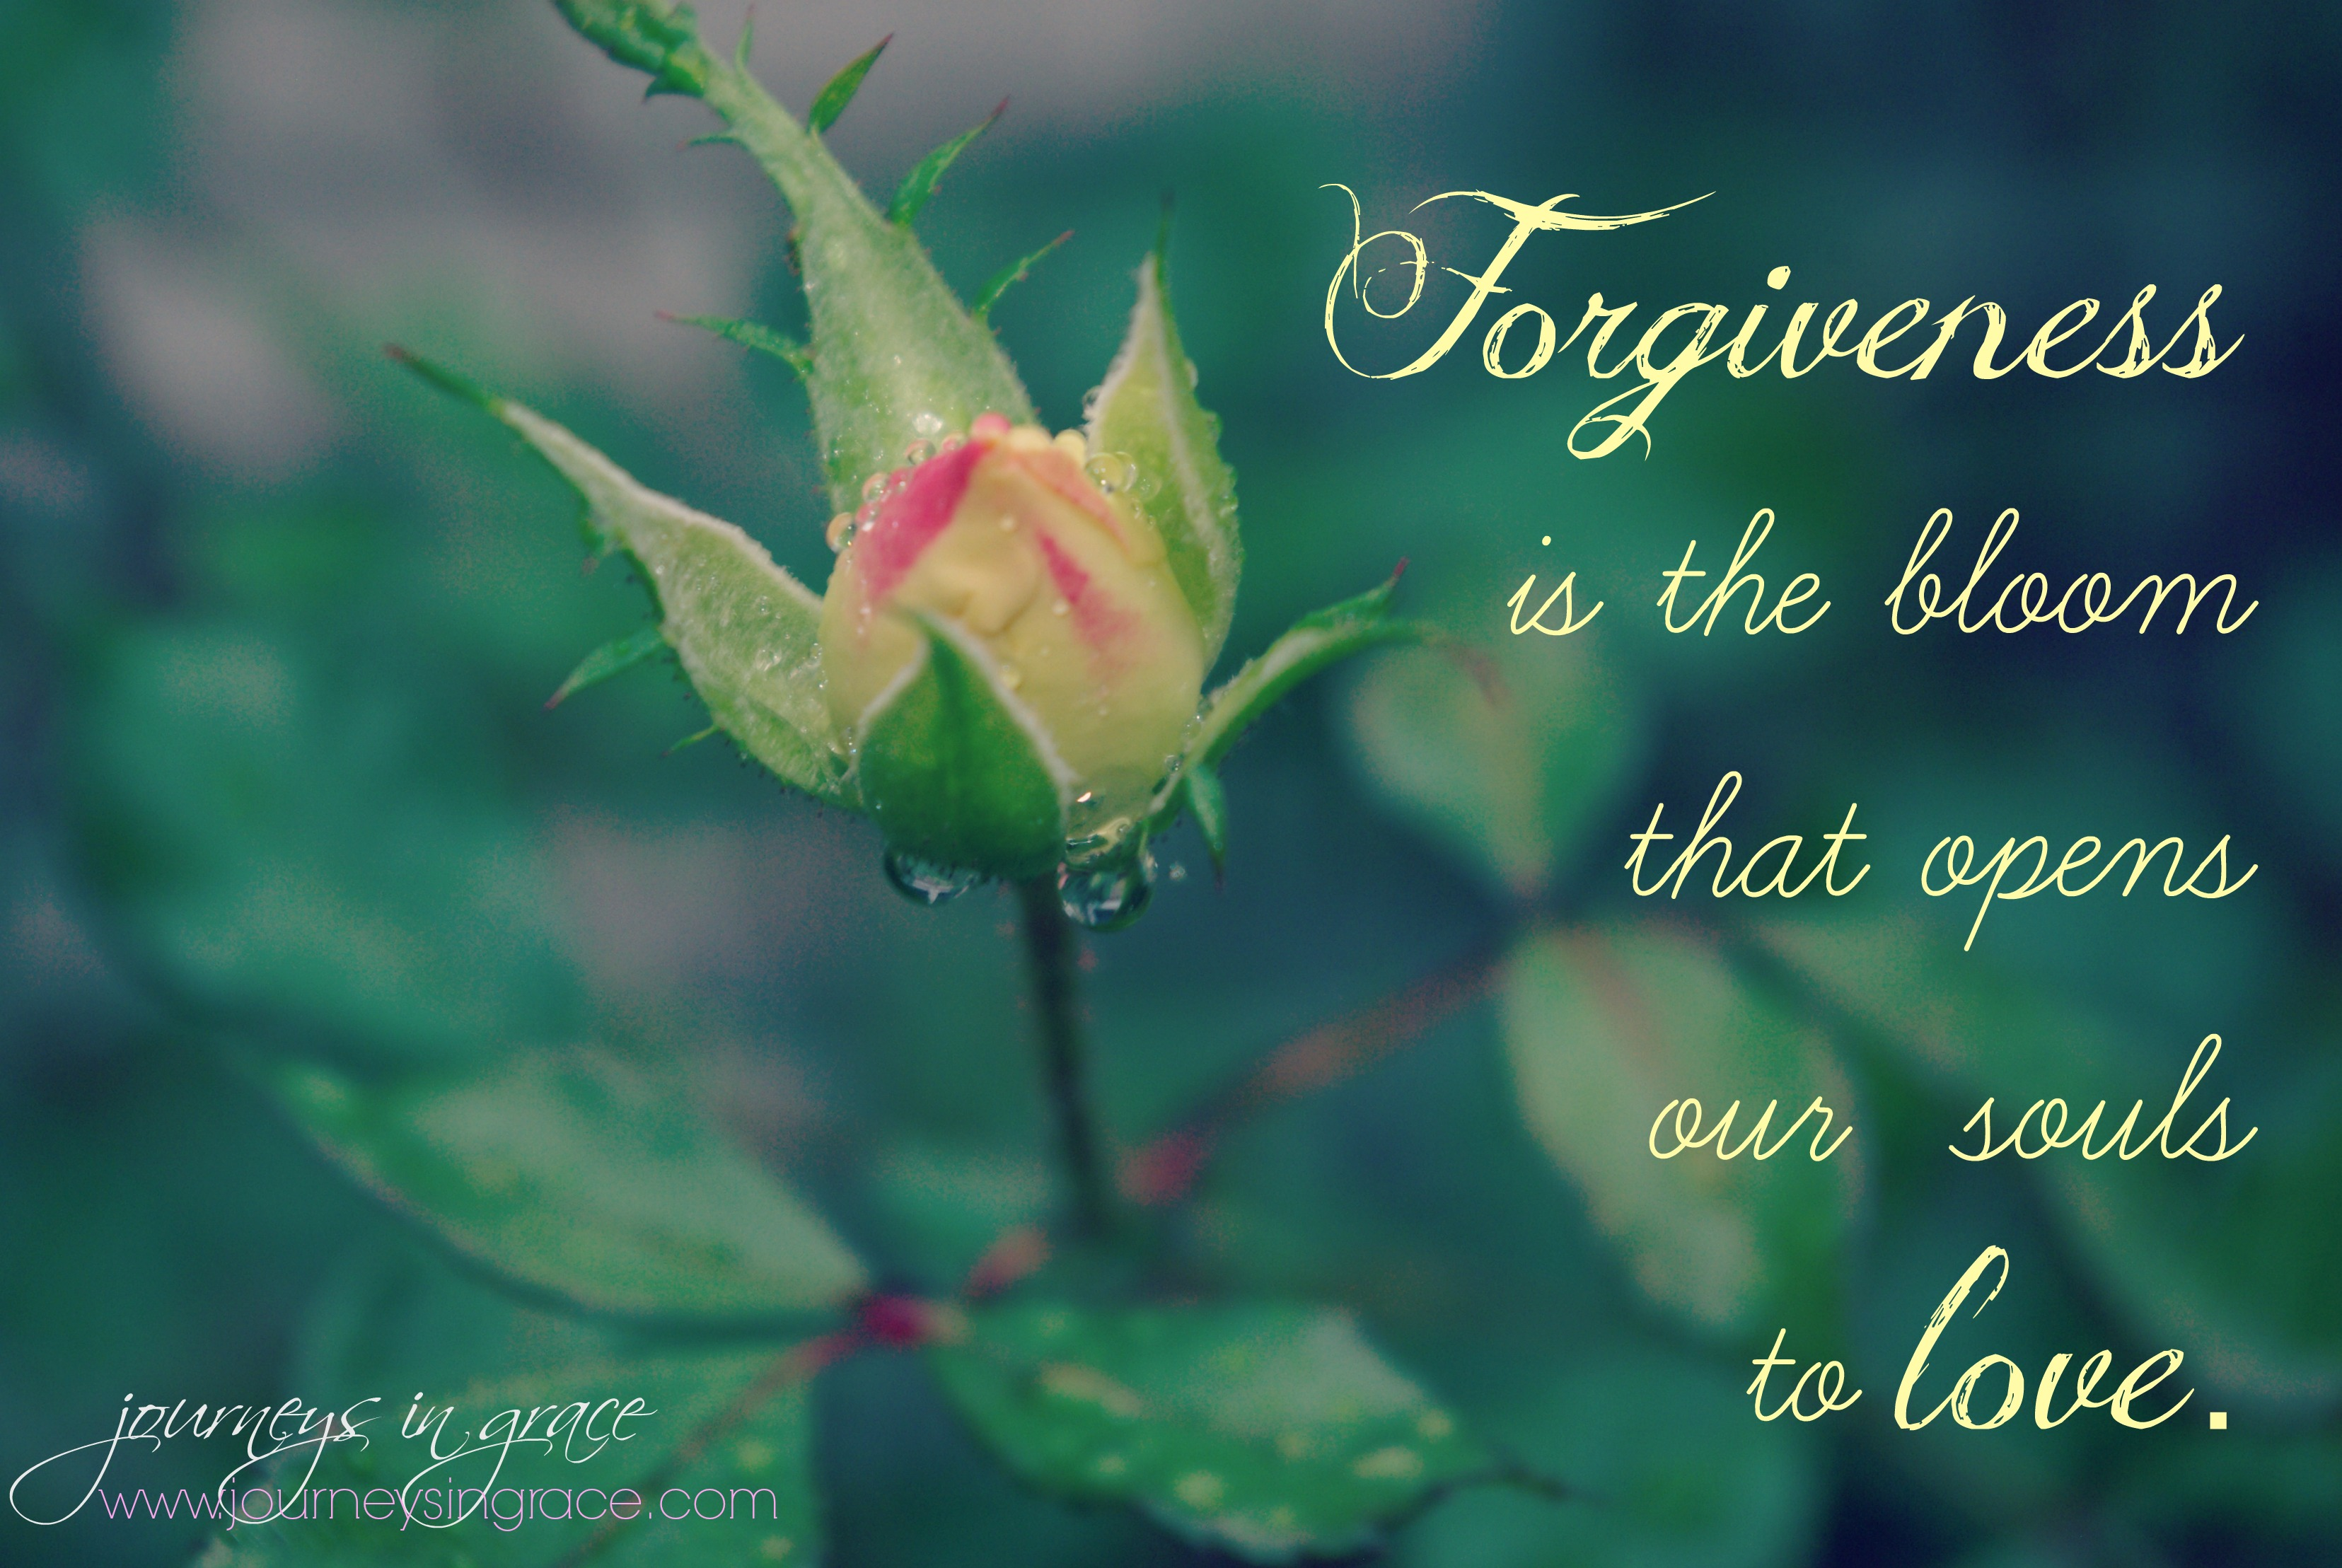 Bible Grace And Peace To You Forgiveness